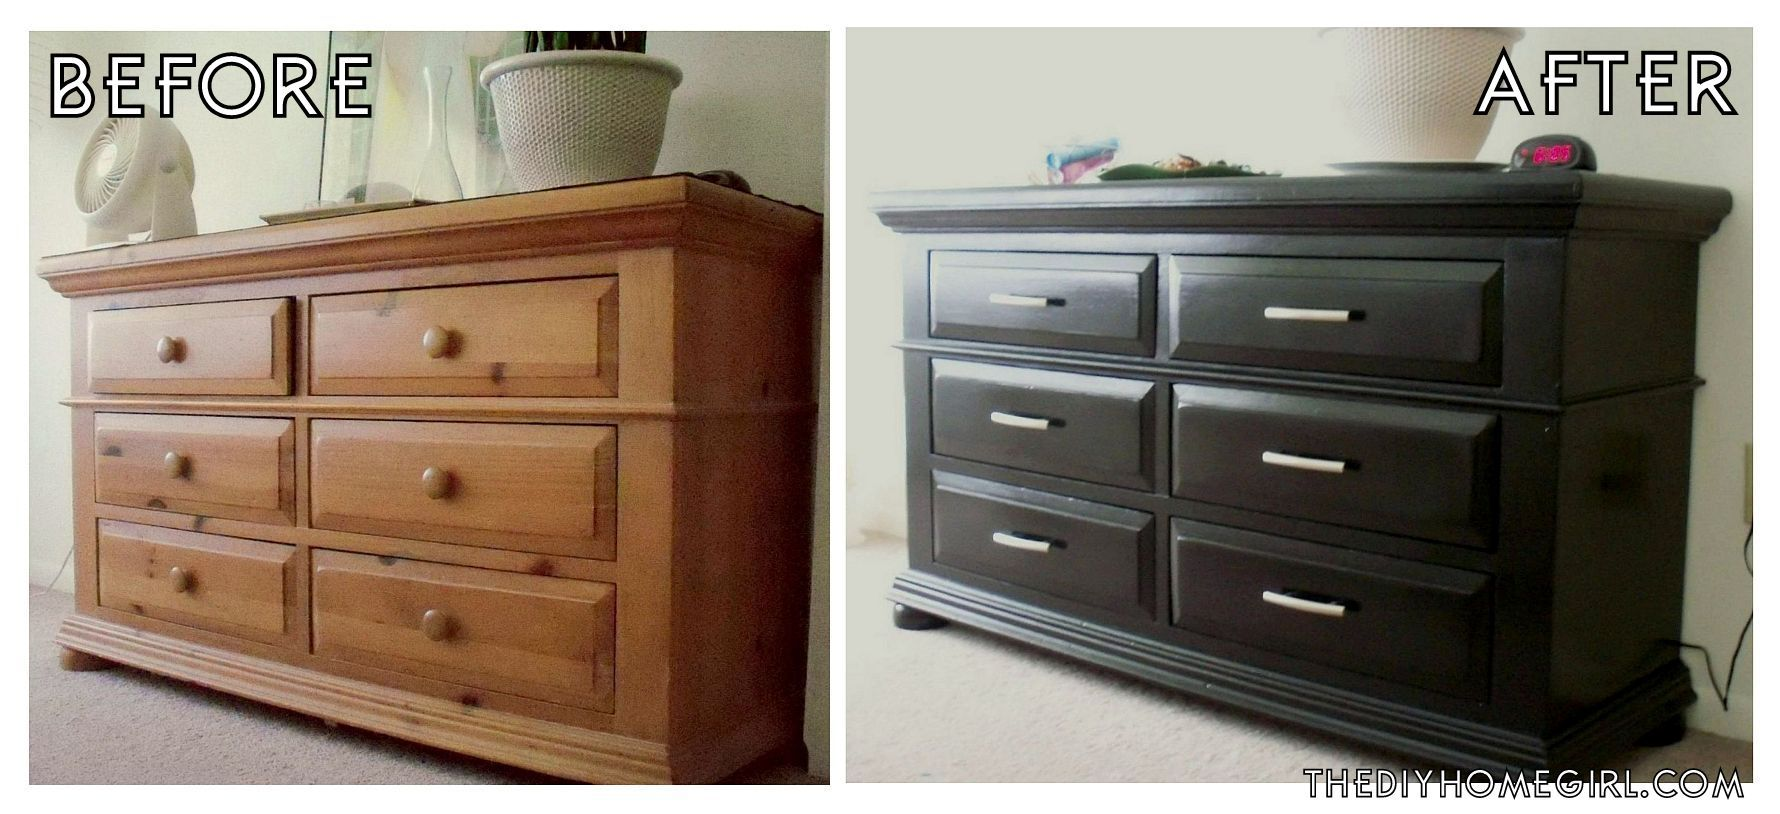 4 Awesome Image of Refinished Bedroom Furniture